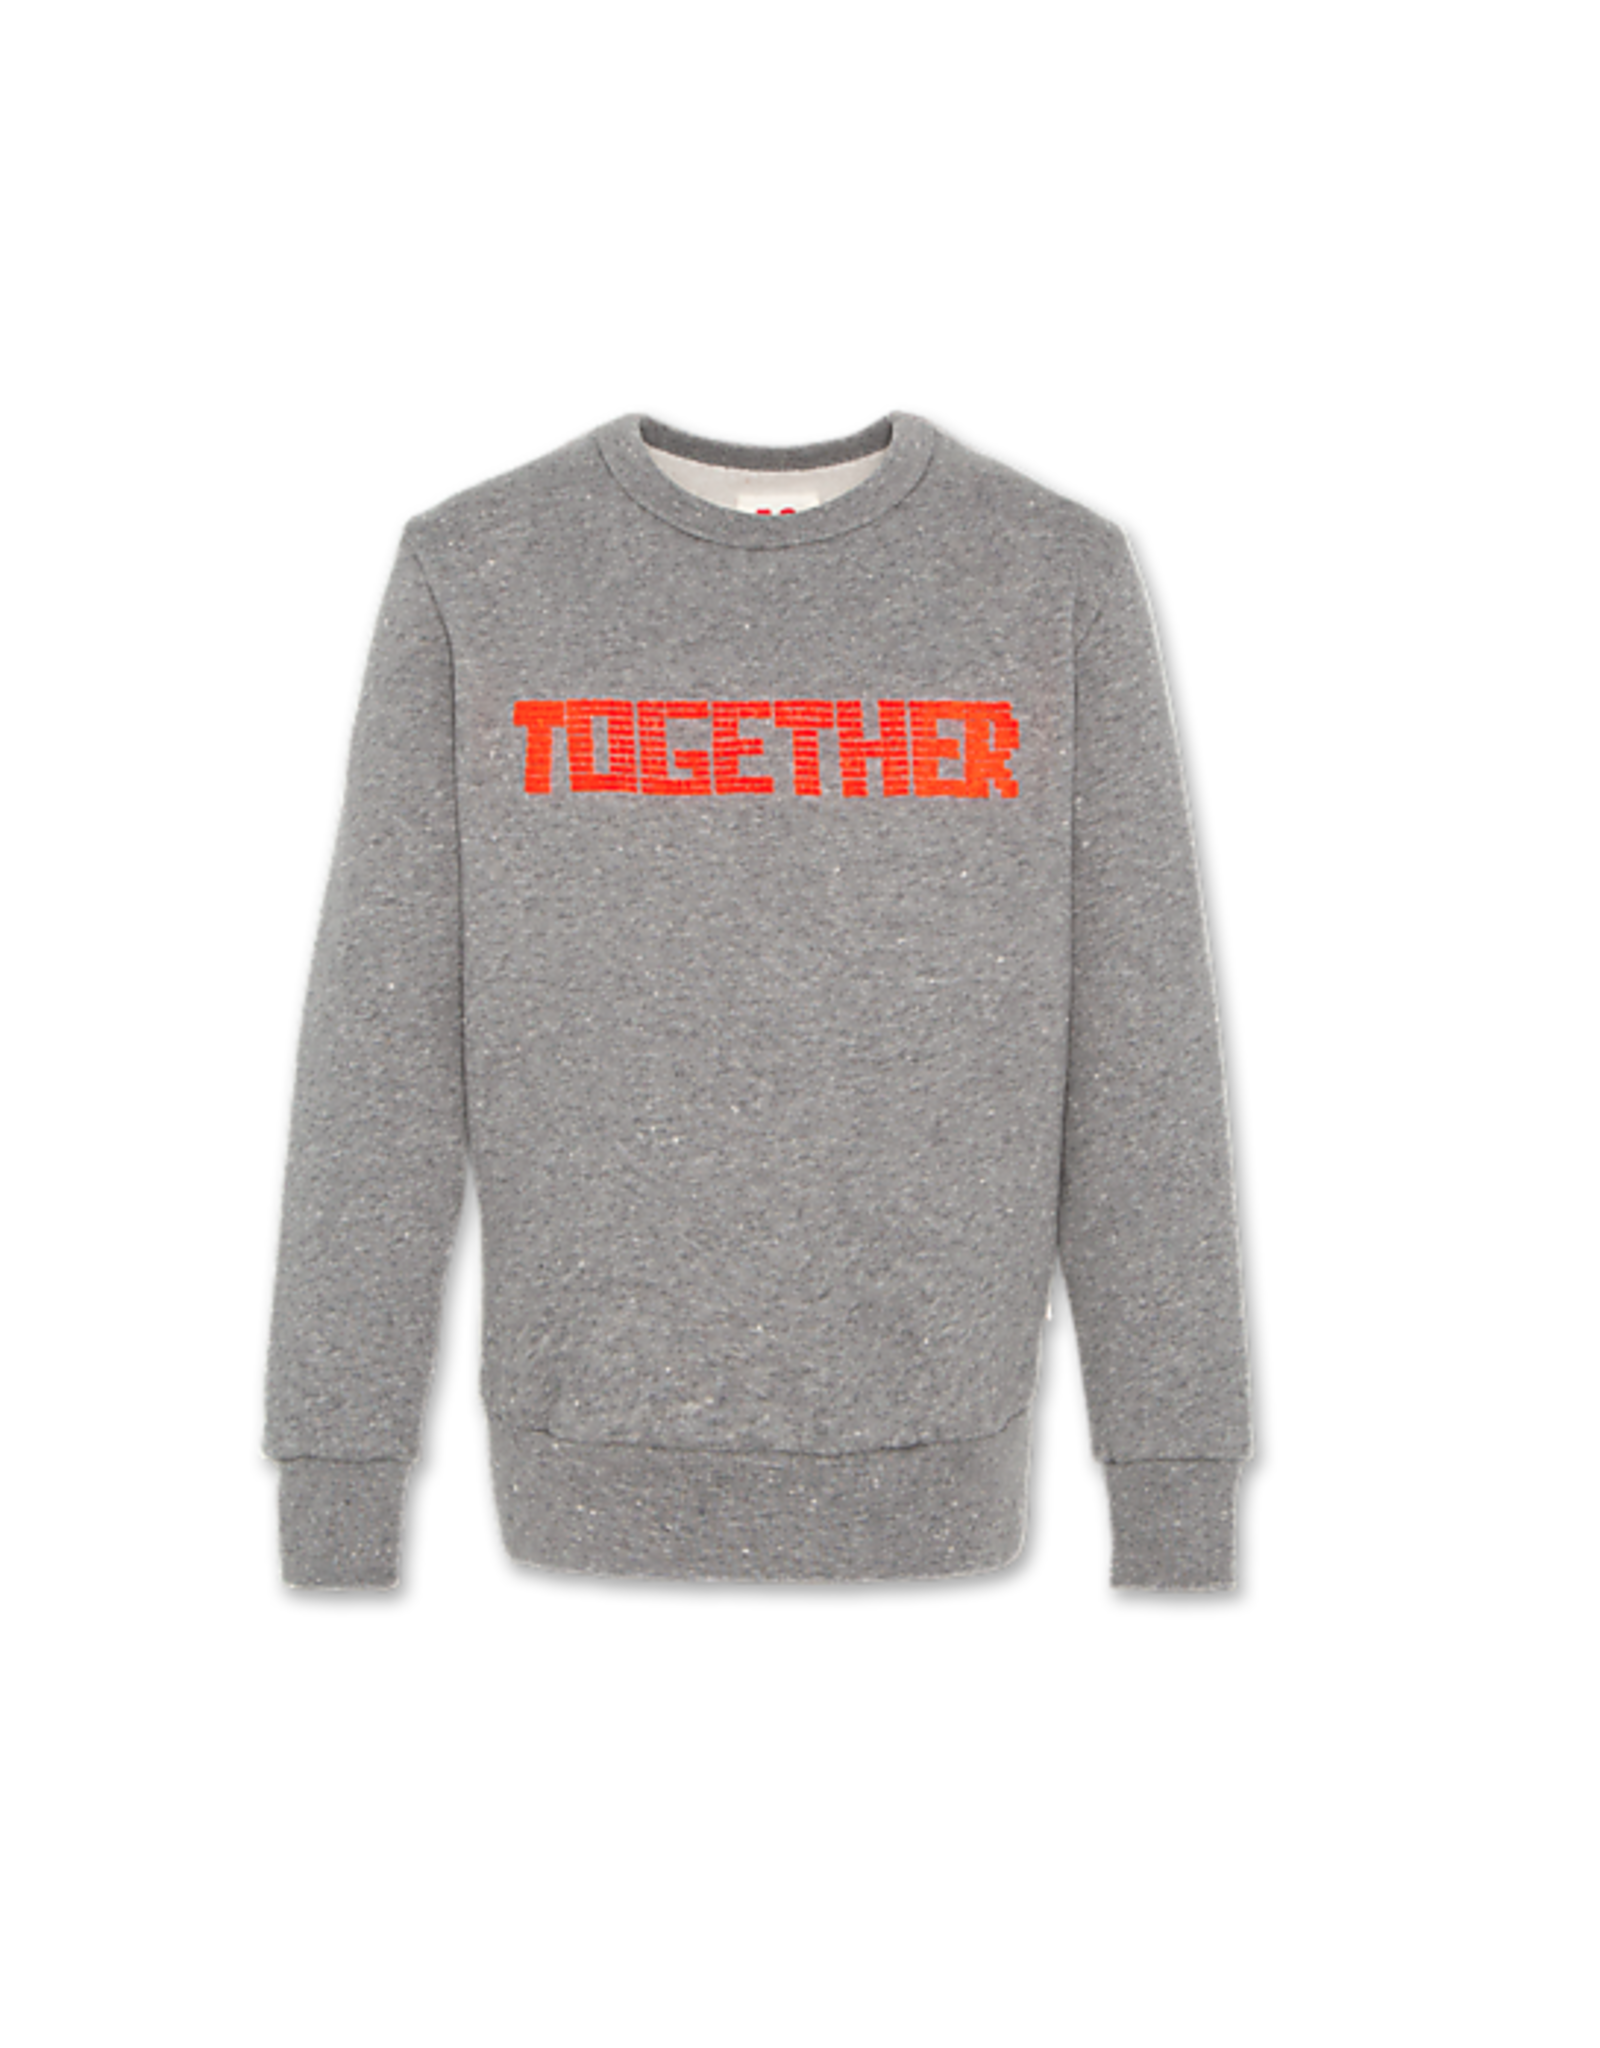 American Outfitters AO sweater grijs met 'together' rood opdruk